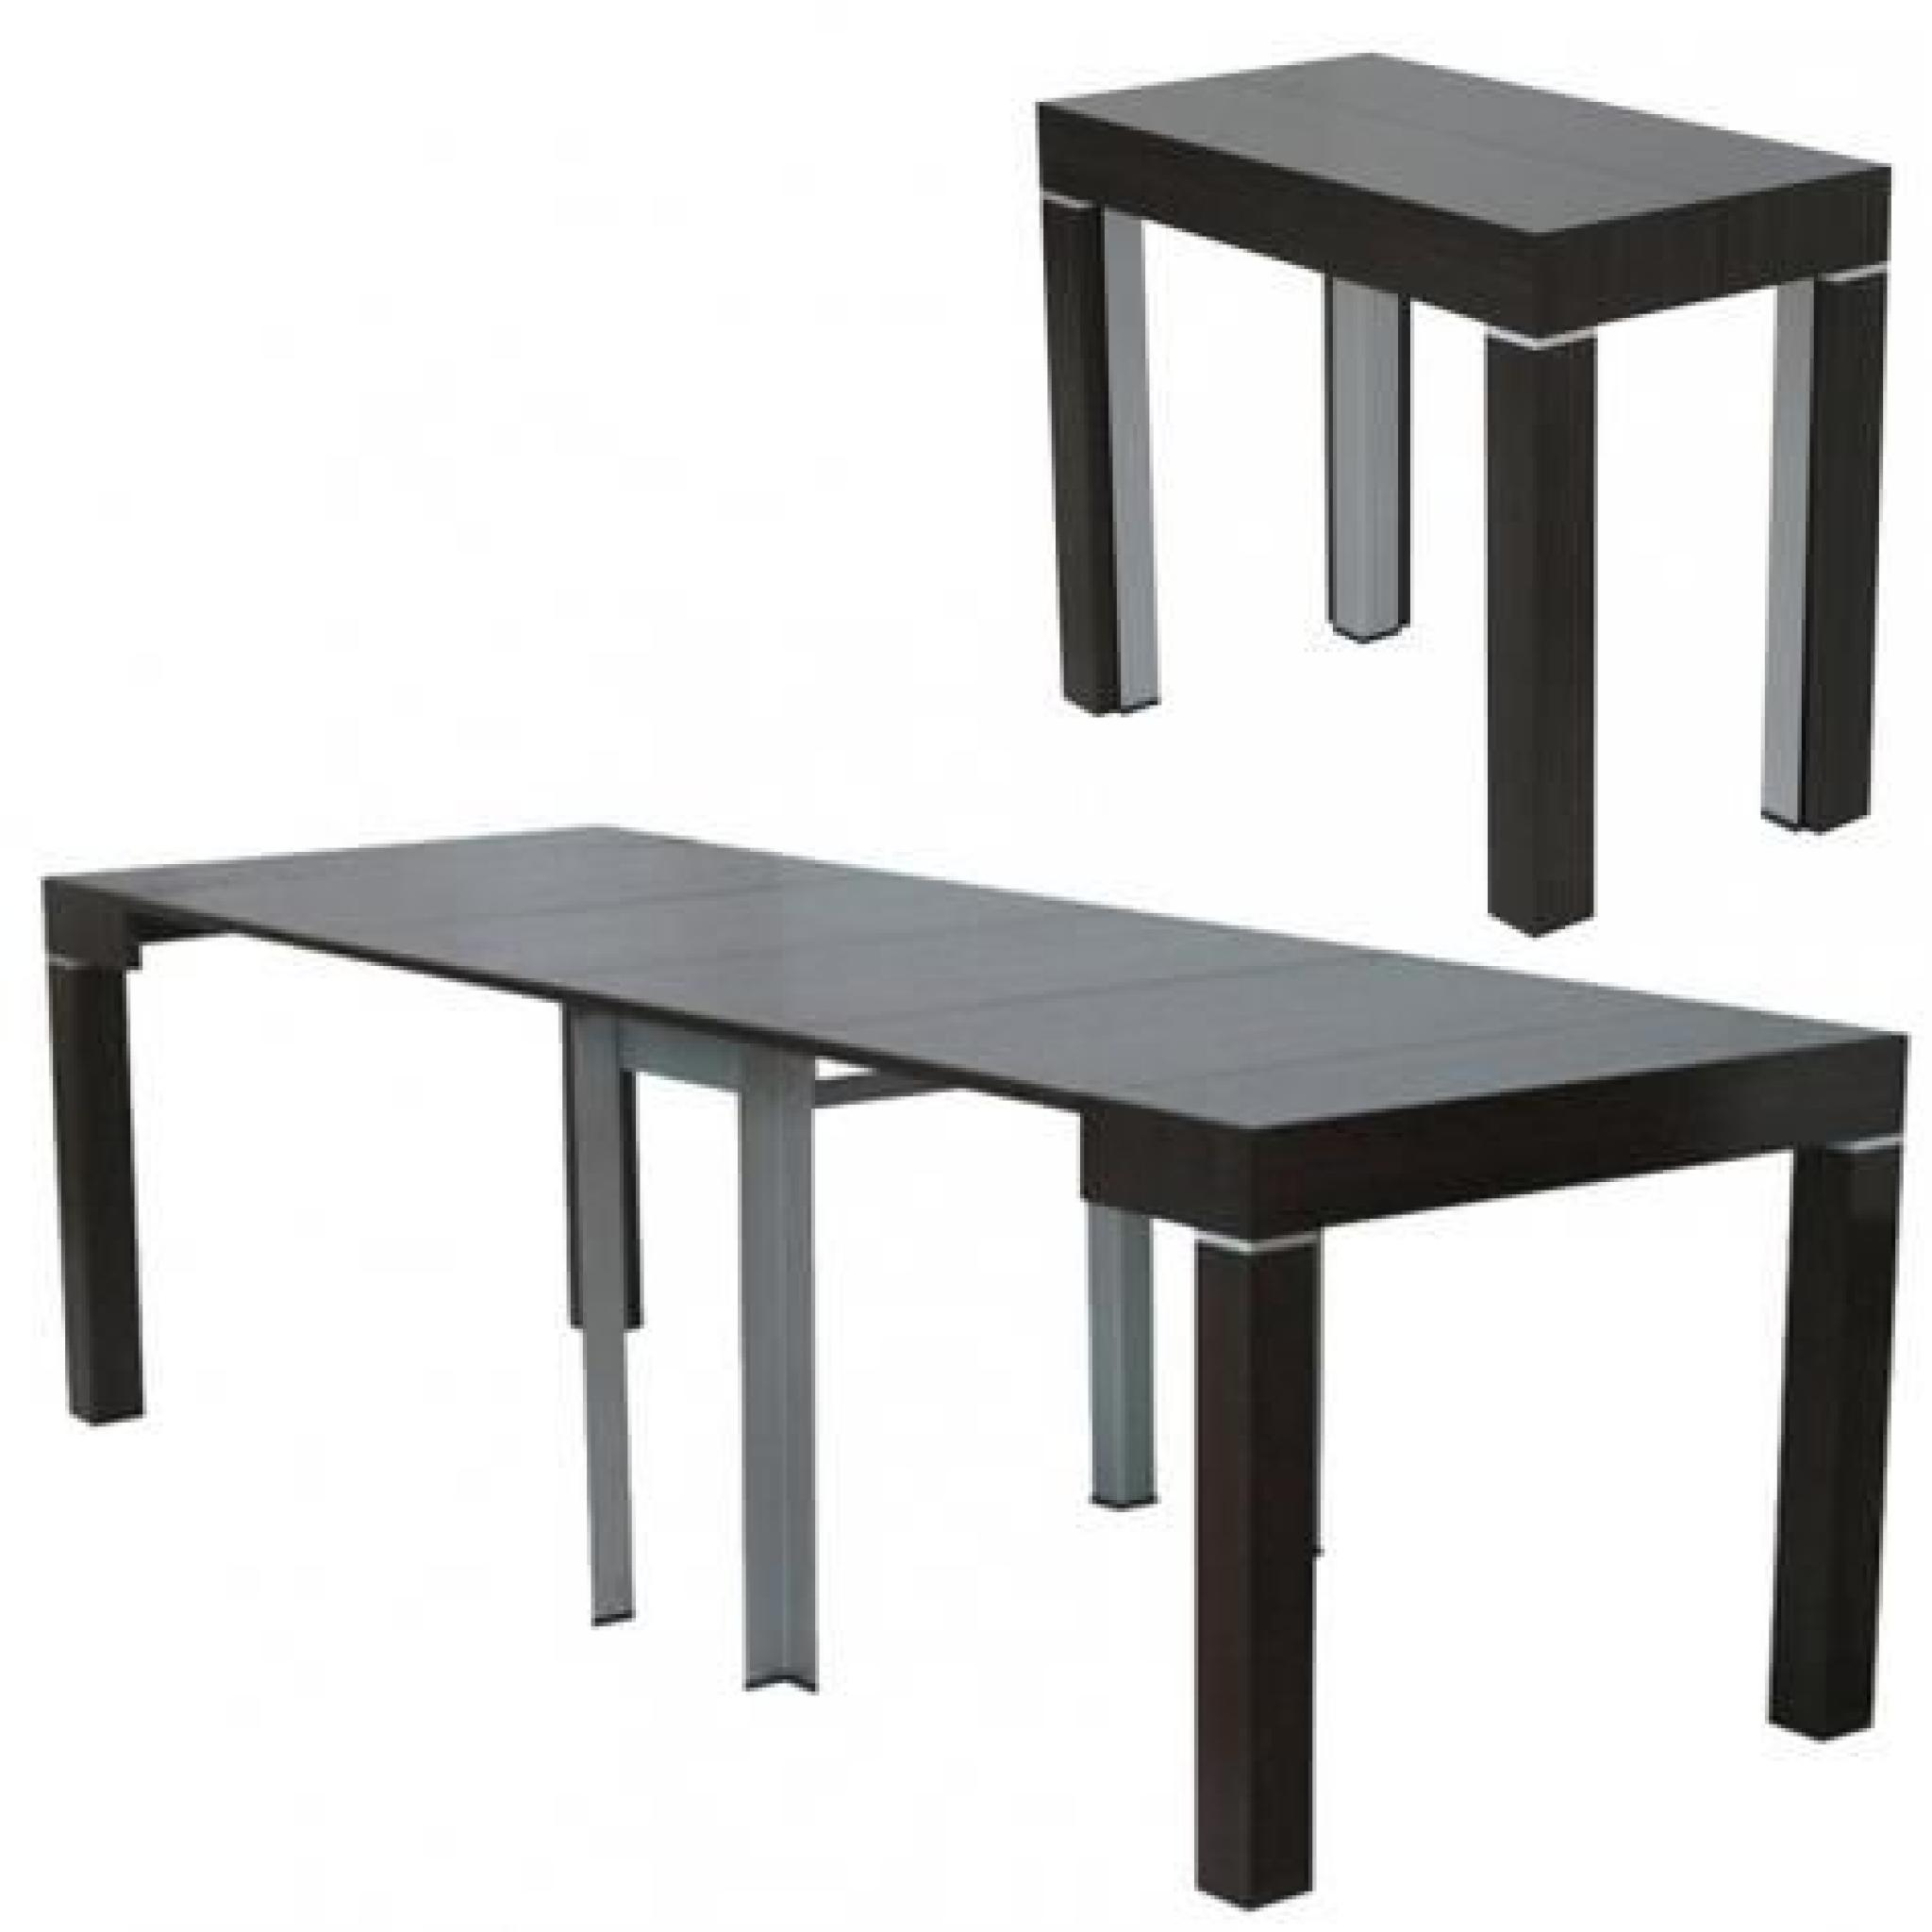 Table console extensible wenge avec 4 rallonges alesia - Table avec ralonge ...